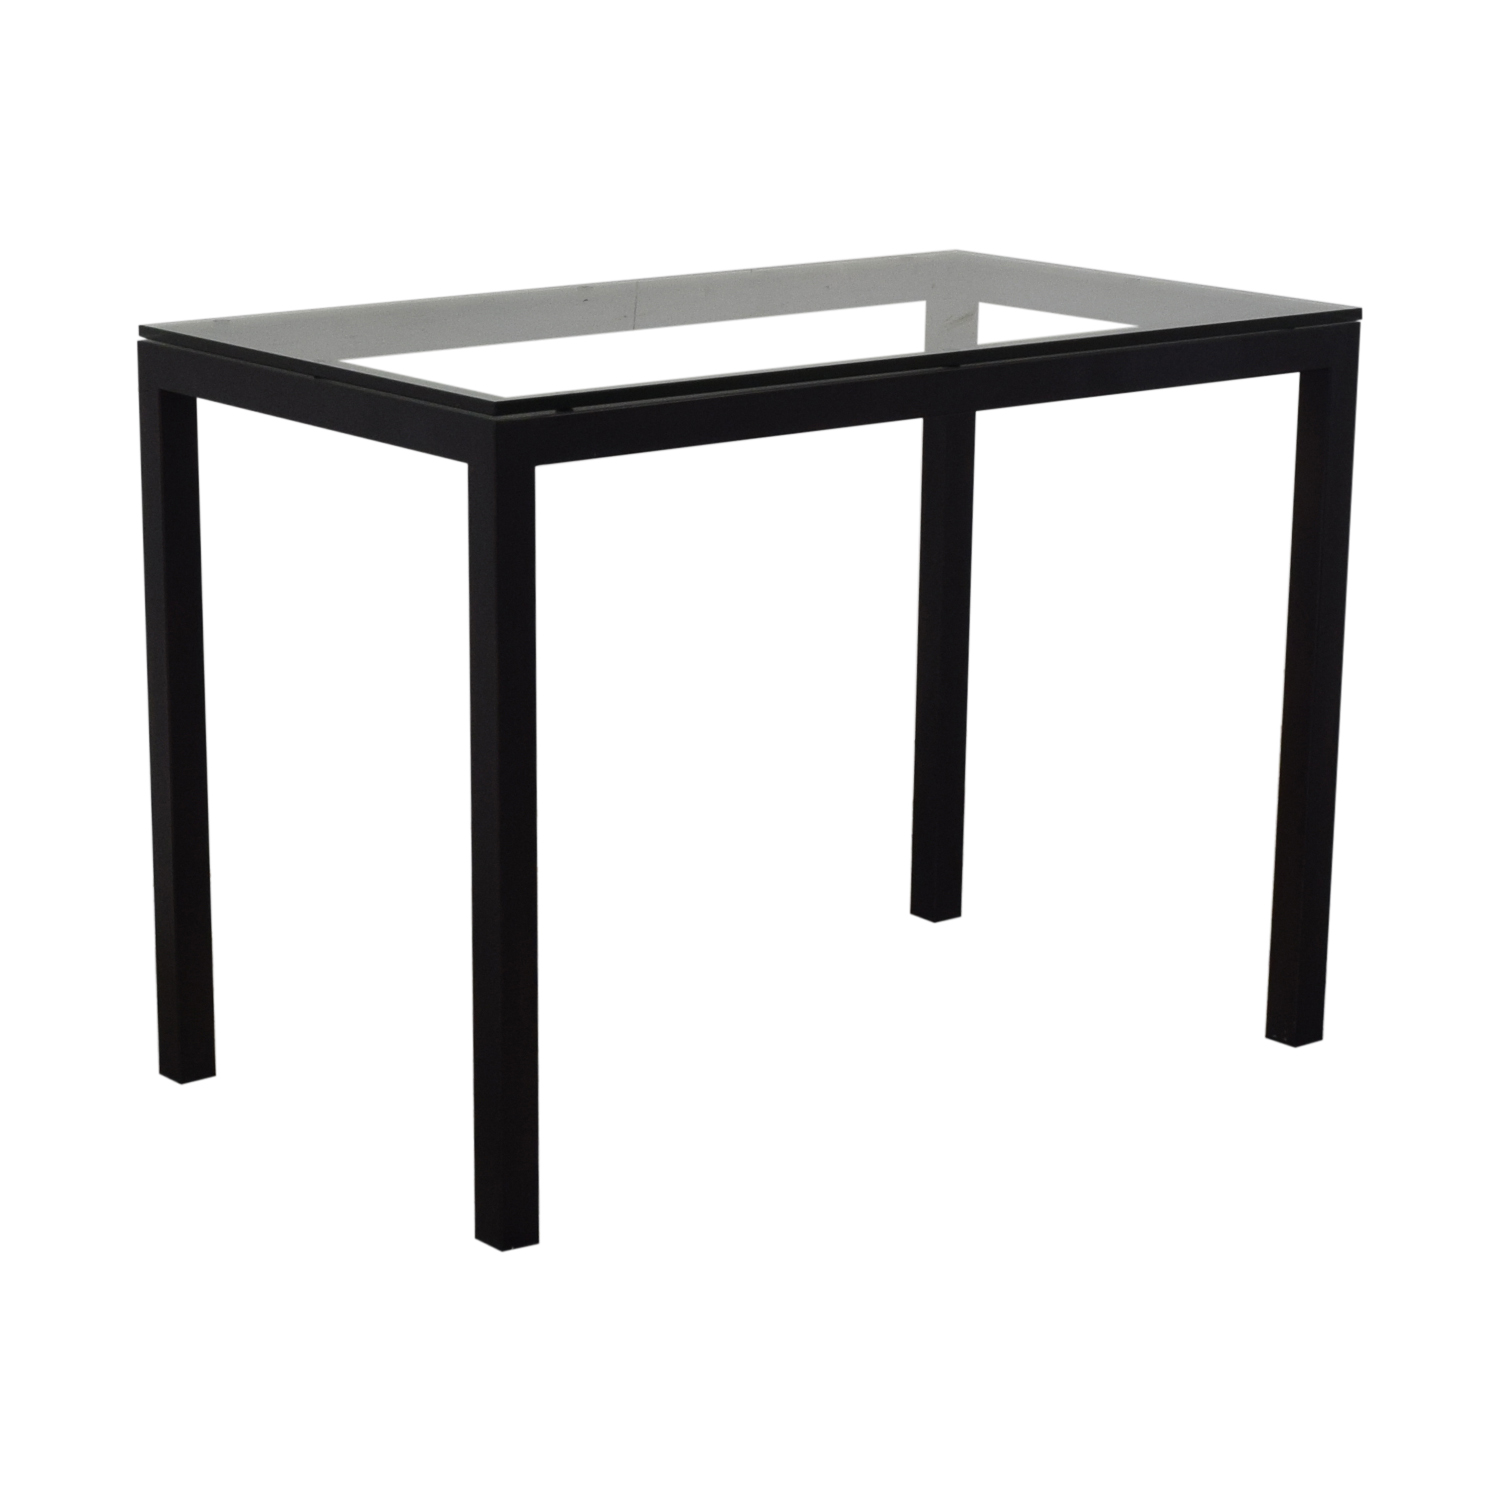 Crate & Barrel Crate & Barrel Parsons High Dining Table on sale